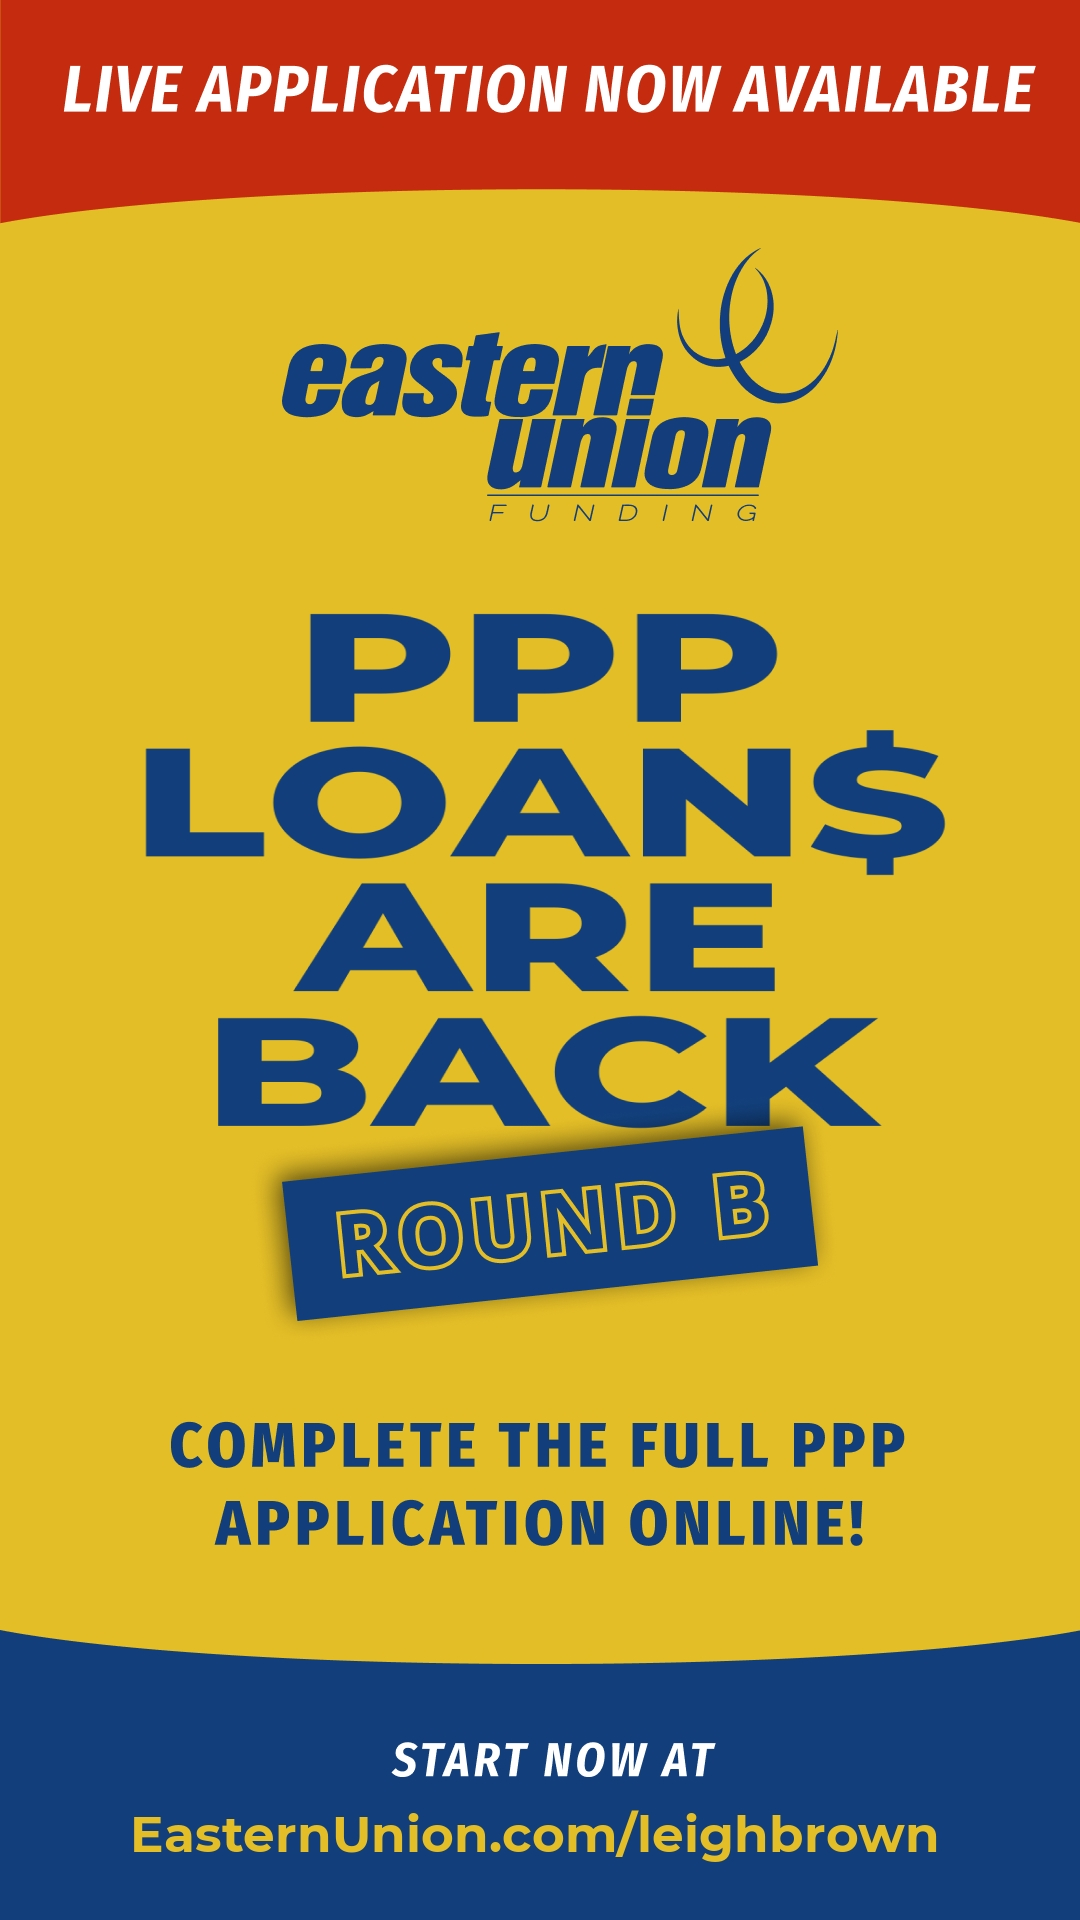 PPP Loans Round B Application with Eastern Union